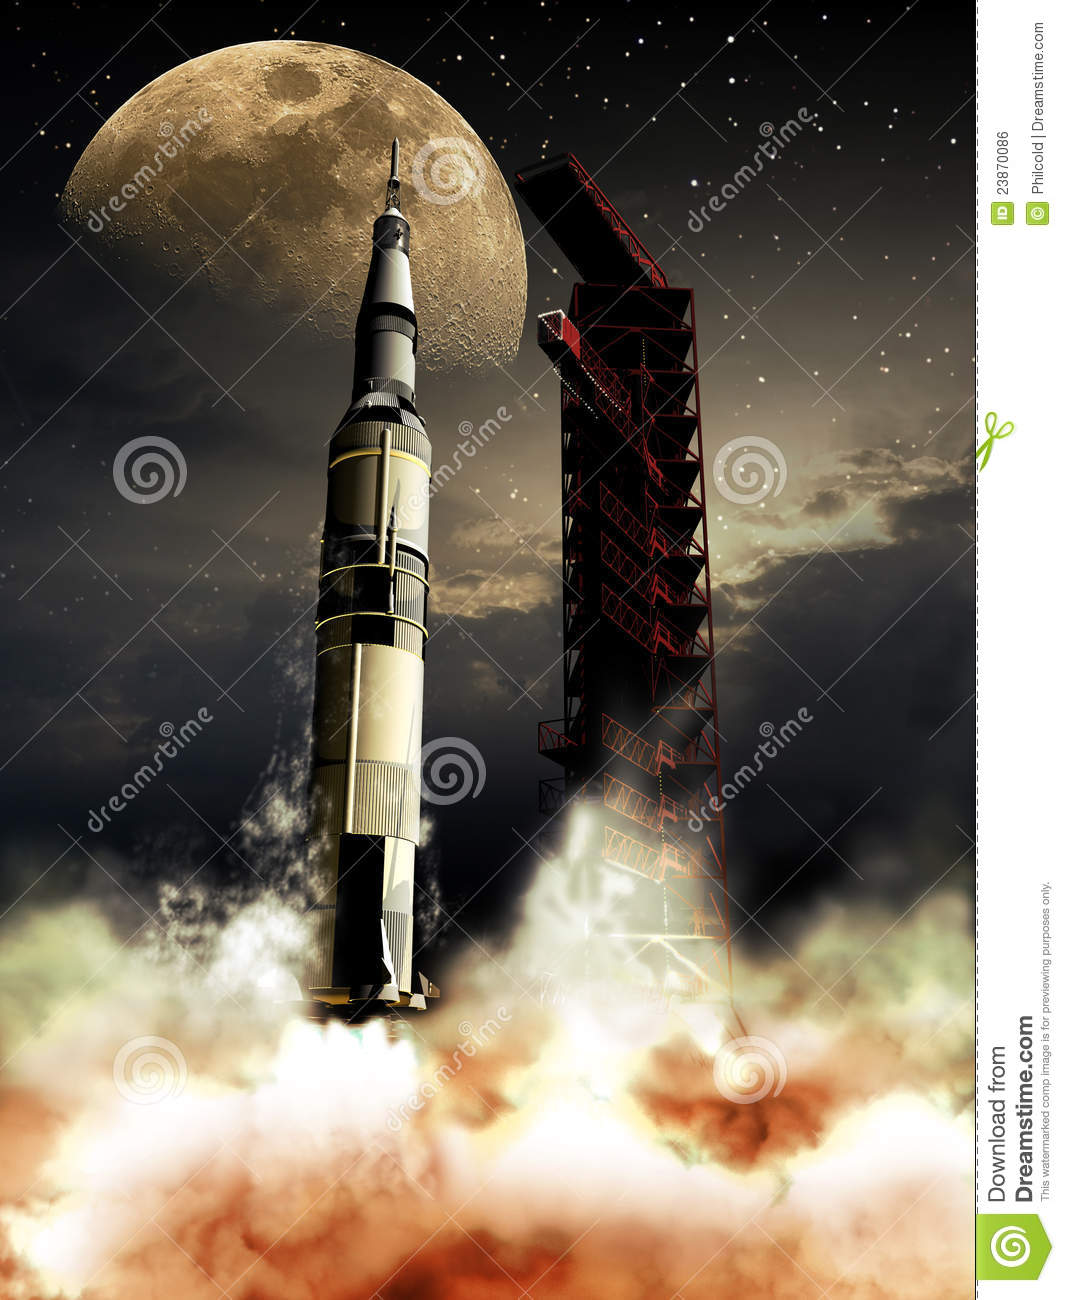 Rocket To The Moon Royalty Free Stock Image Image 23870086